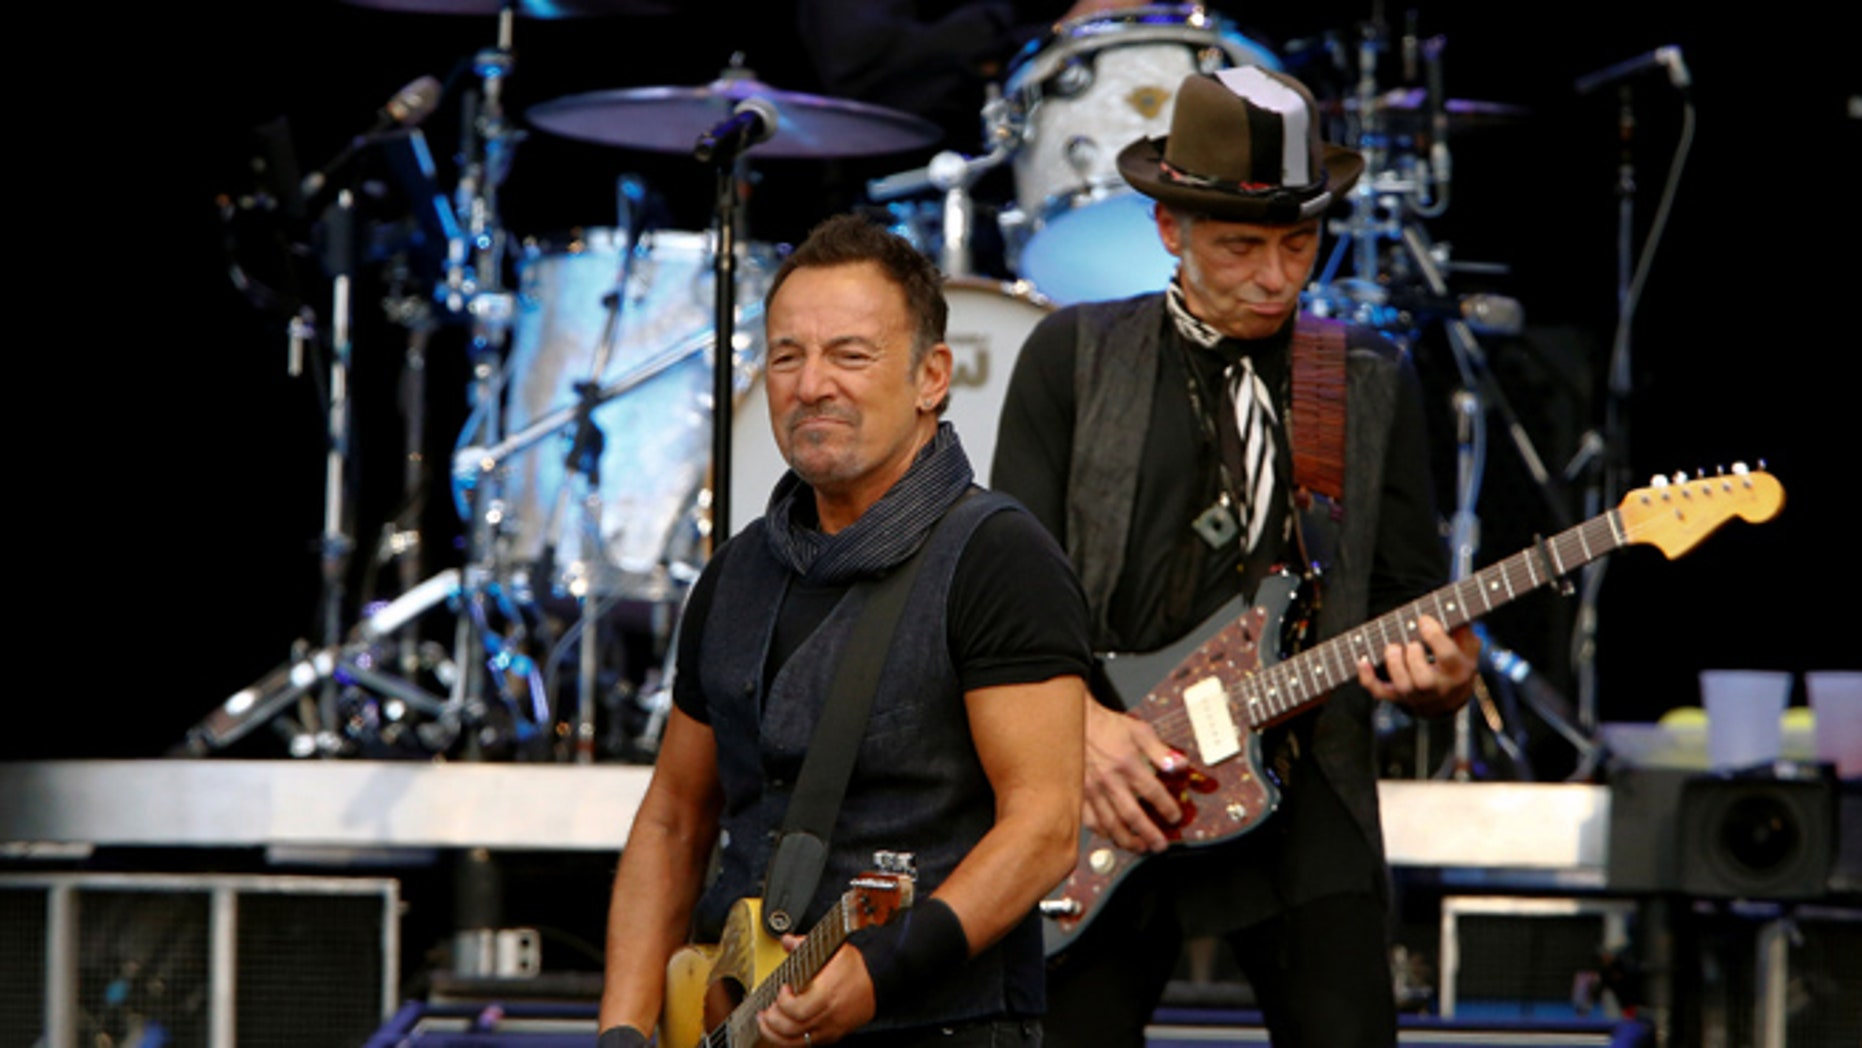 Bruce Springsteen signed an absence note for a fifth grader